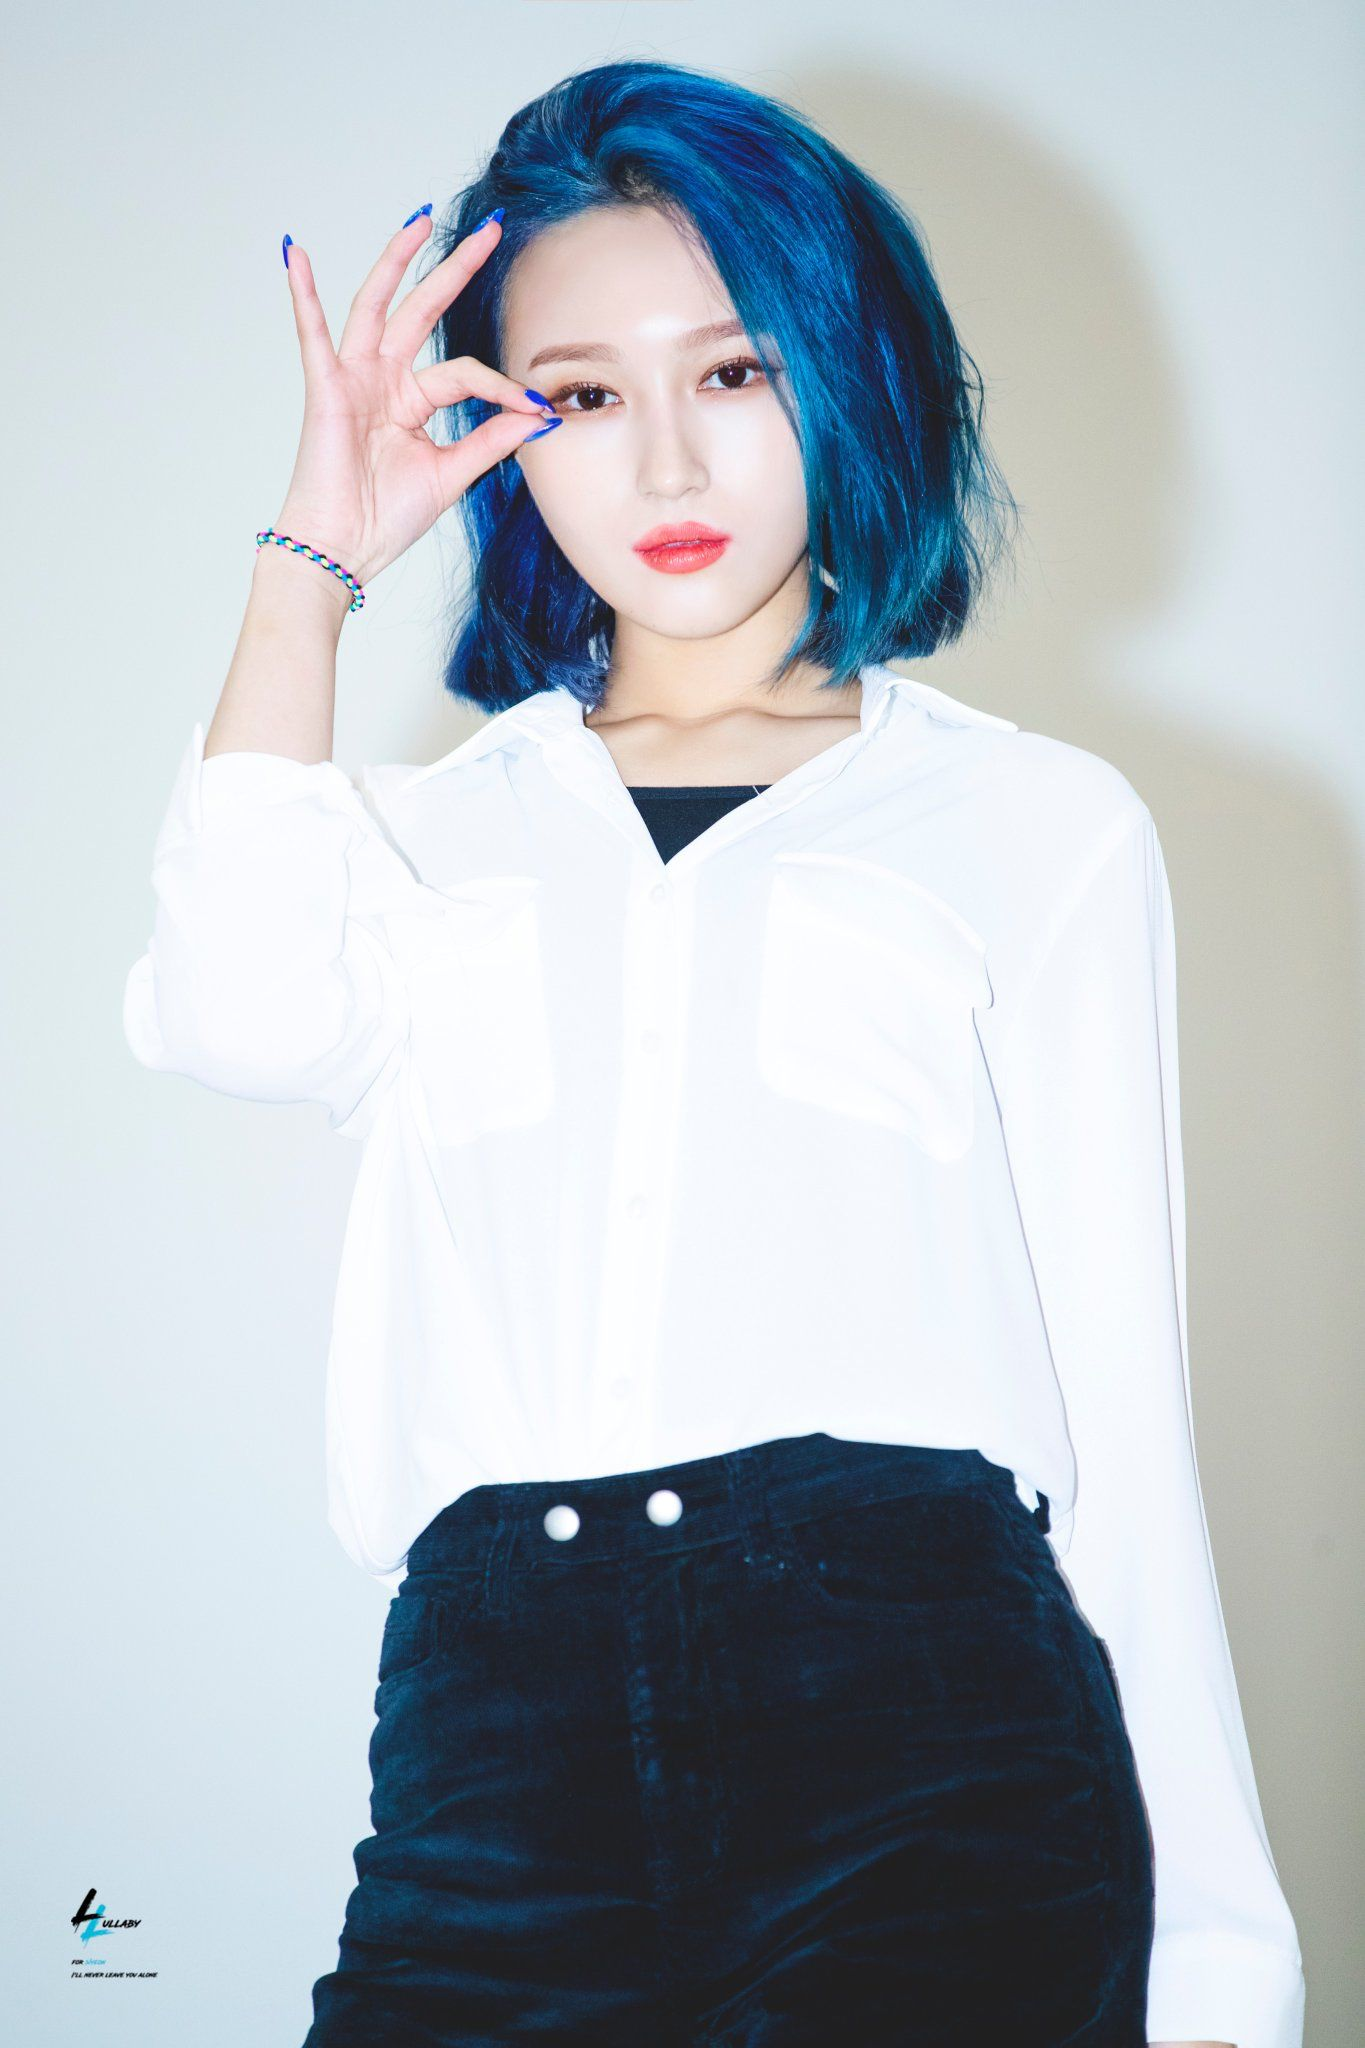 Pin By Aelia On Pretty Kpop Idol Pics Kpop Girls Short Blue Hair Uzzlang Girl